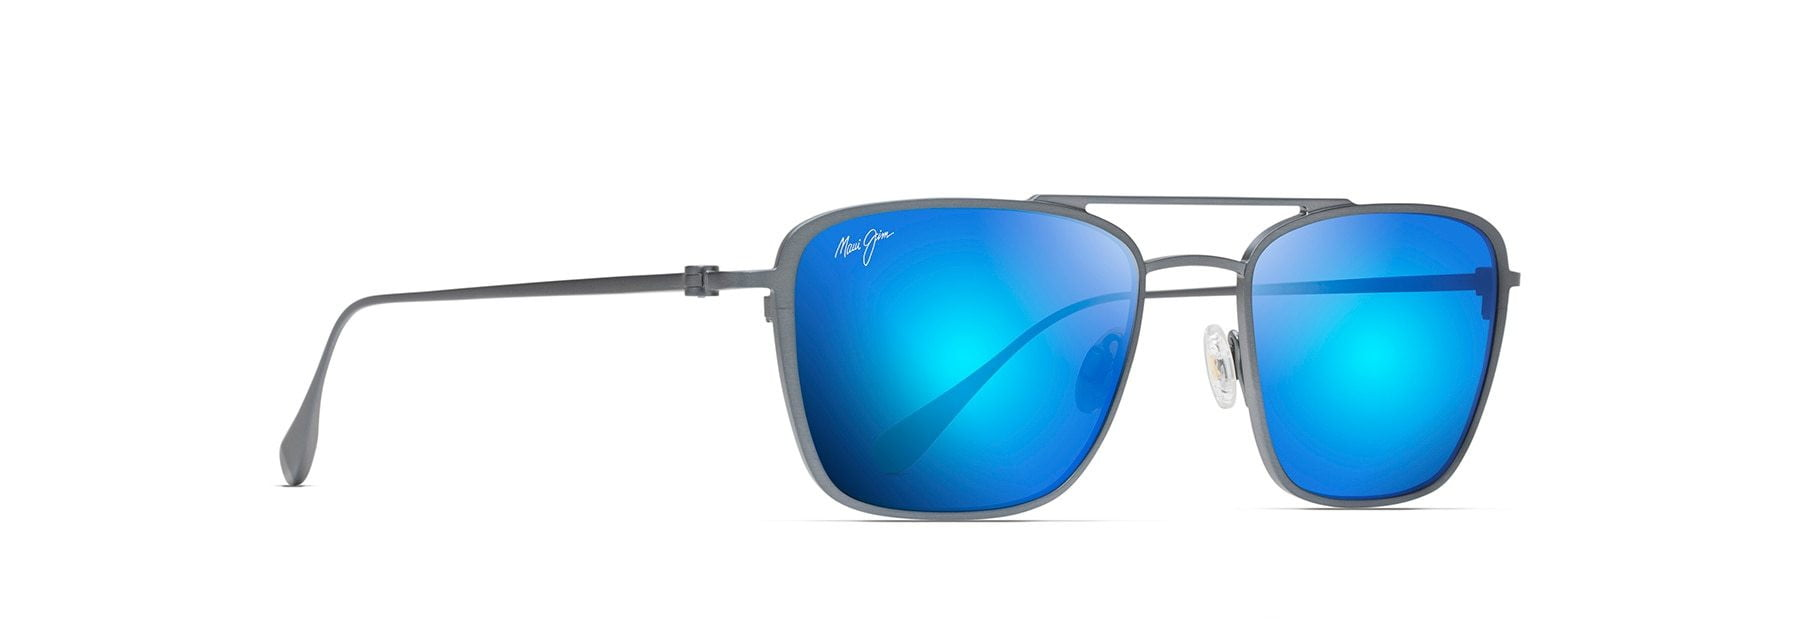 Maui Jim Ebb & Flow Sunglasses